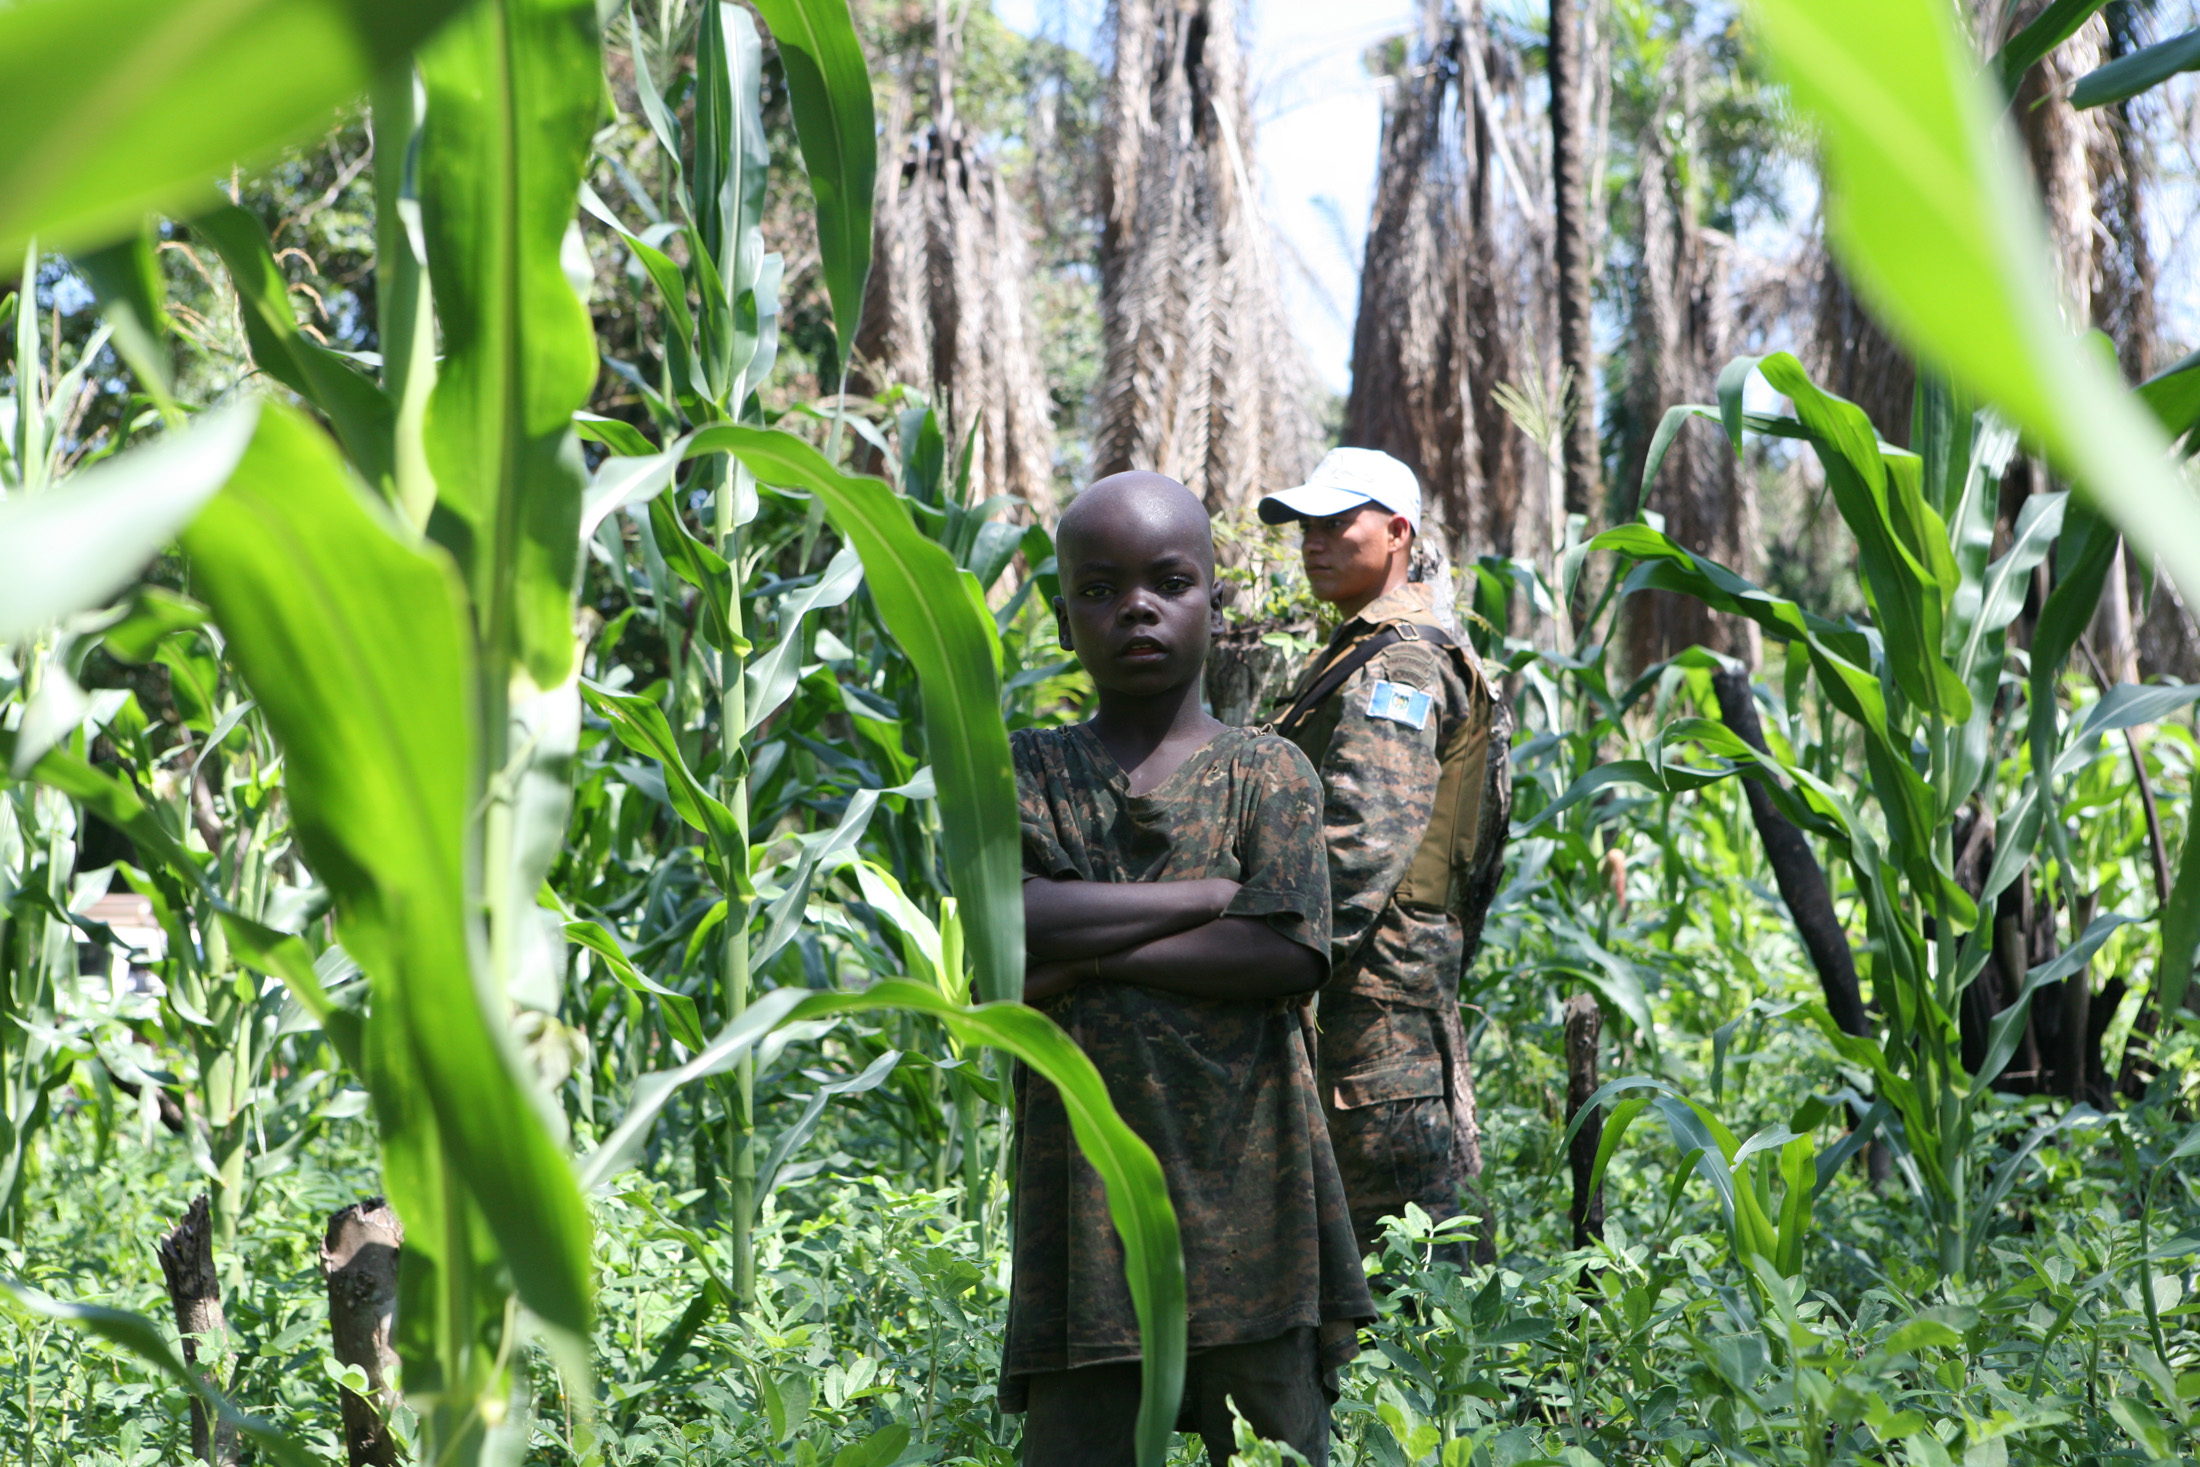 A UN Monusco peacekeeper in Dungu, Oriental Province, keeps watch over Linakofo, a camp of 1359 internally-displaced people (IDPs), all of whom have fled attacks by the Lord's Resistance Army (LRA)